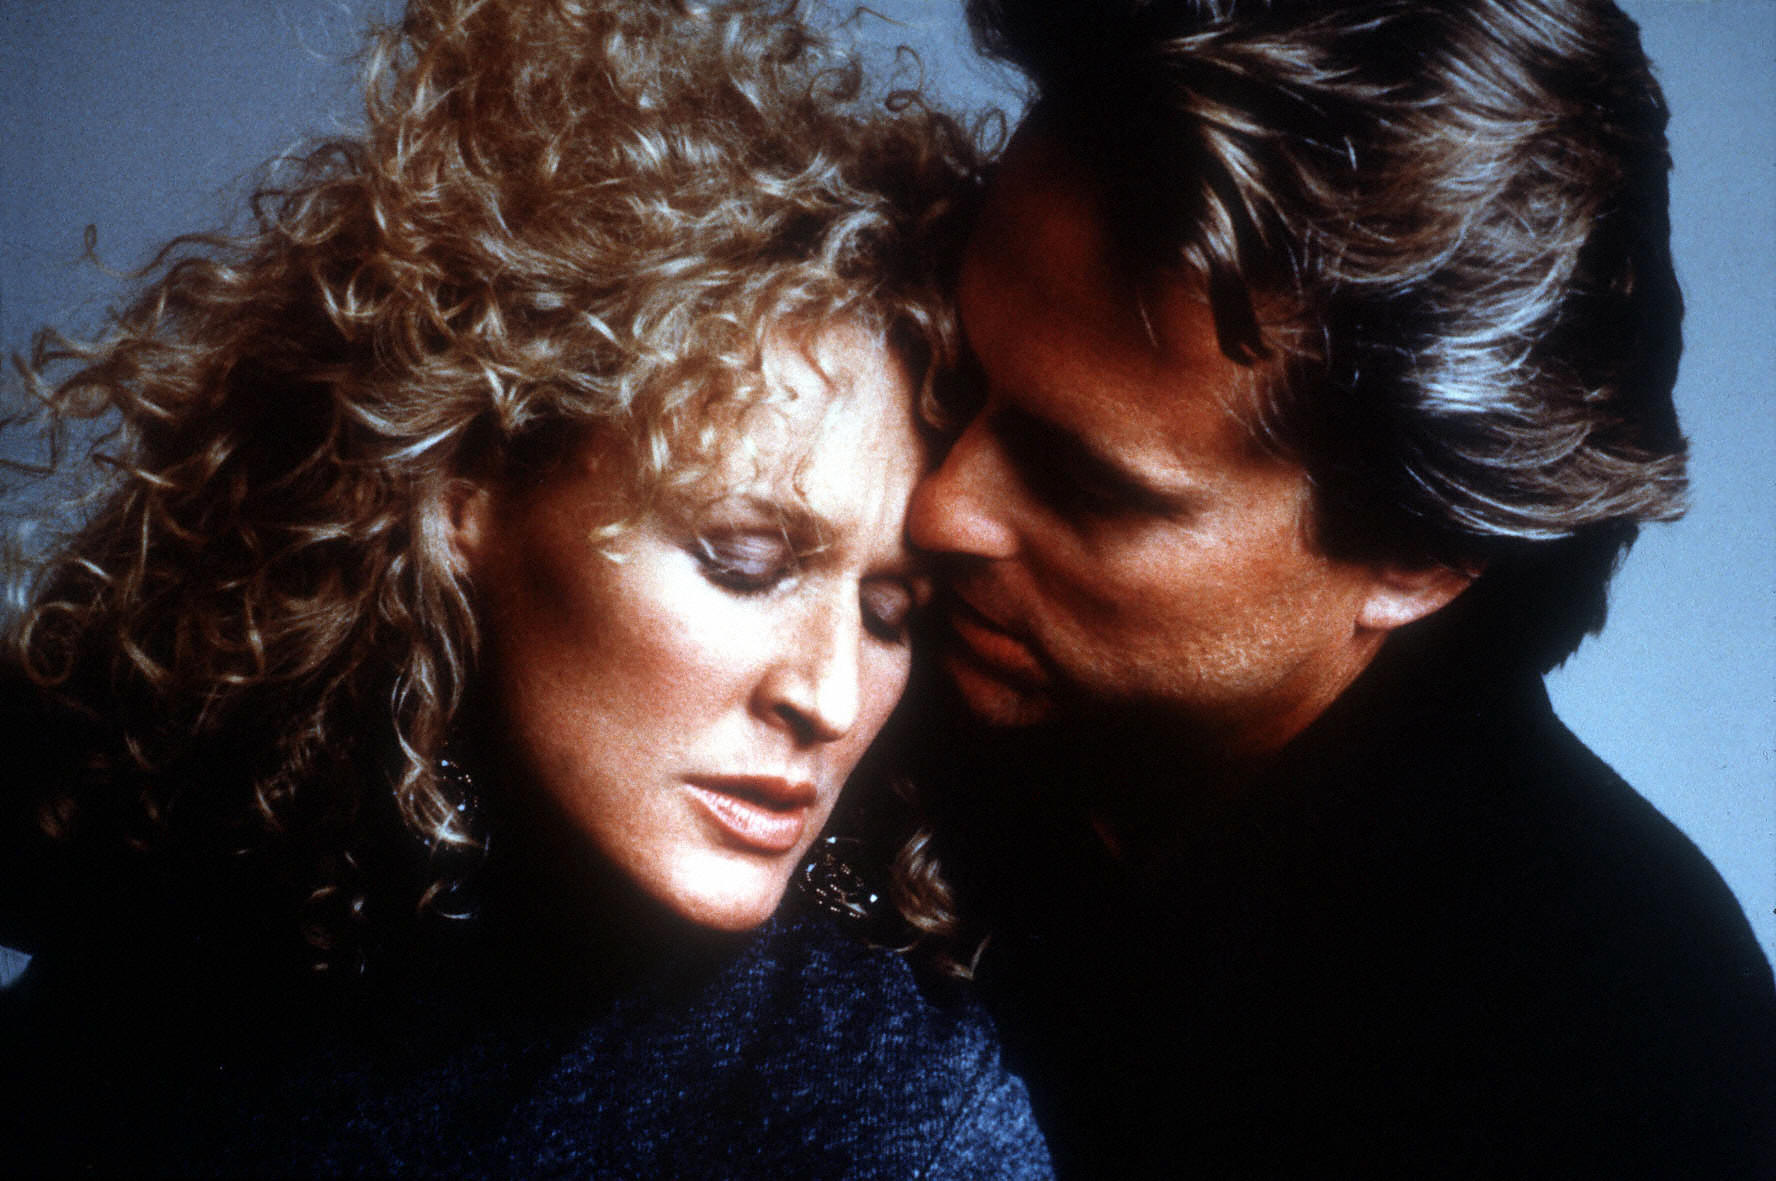 Glenn close in fatal attraction 01